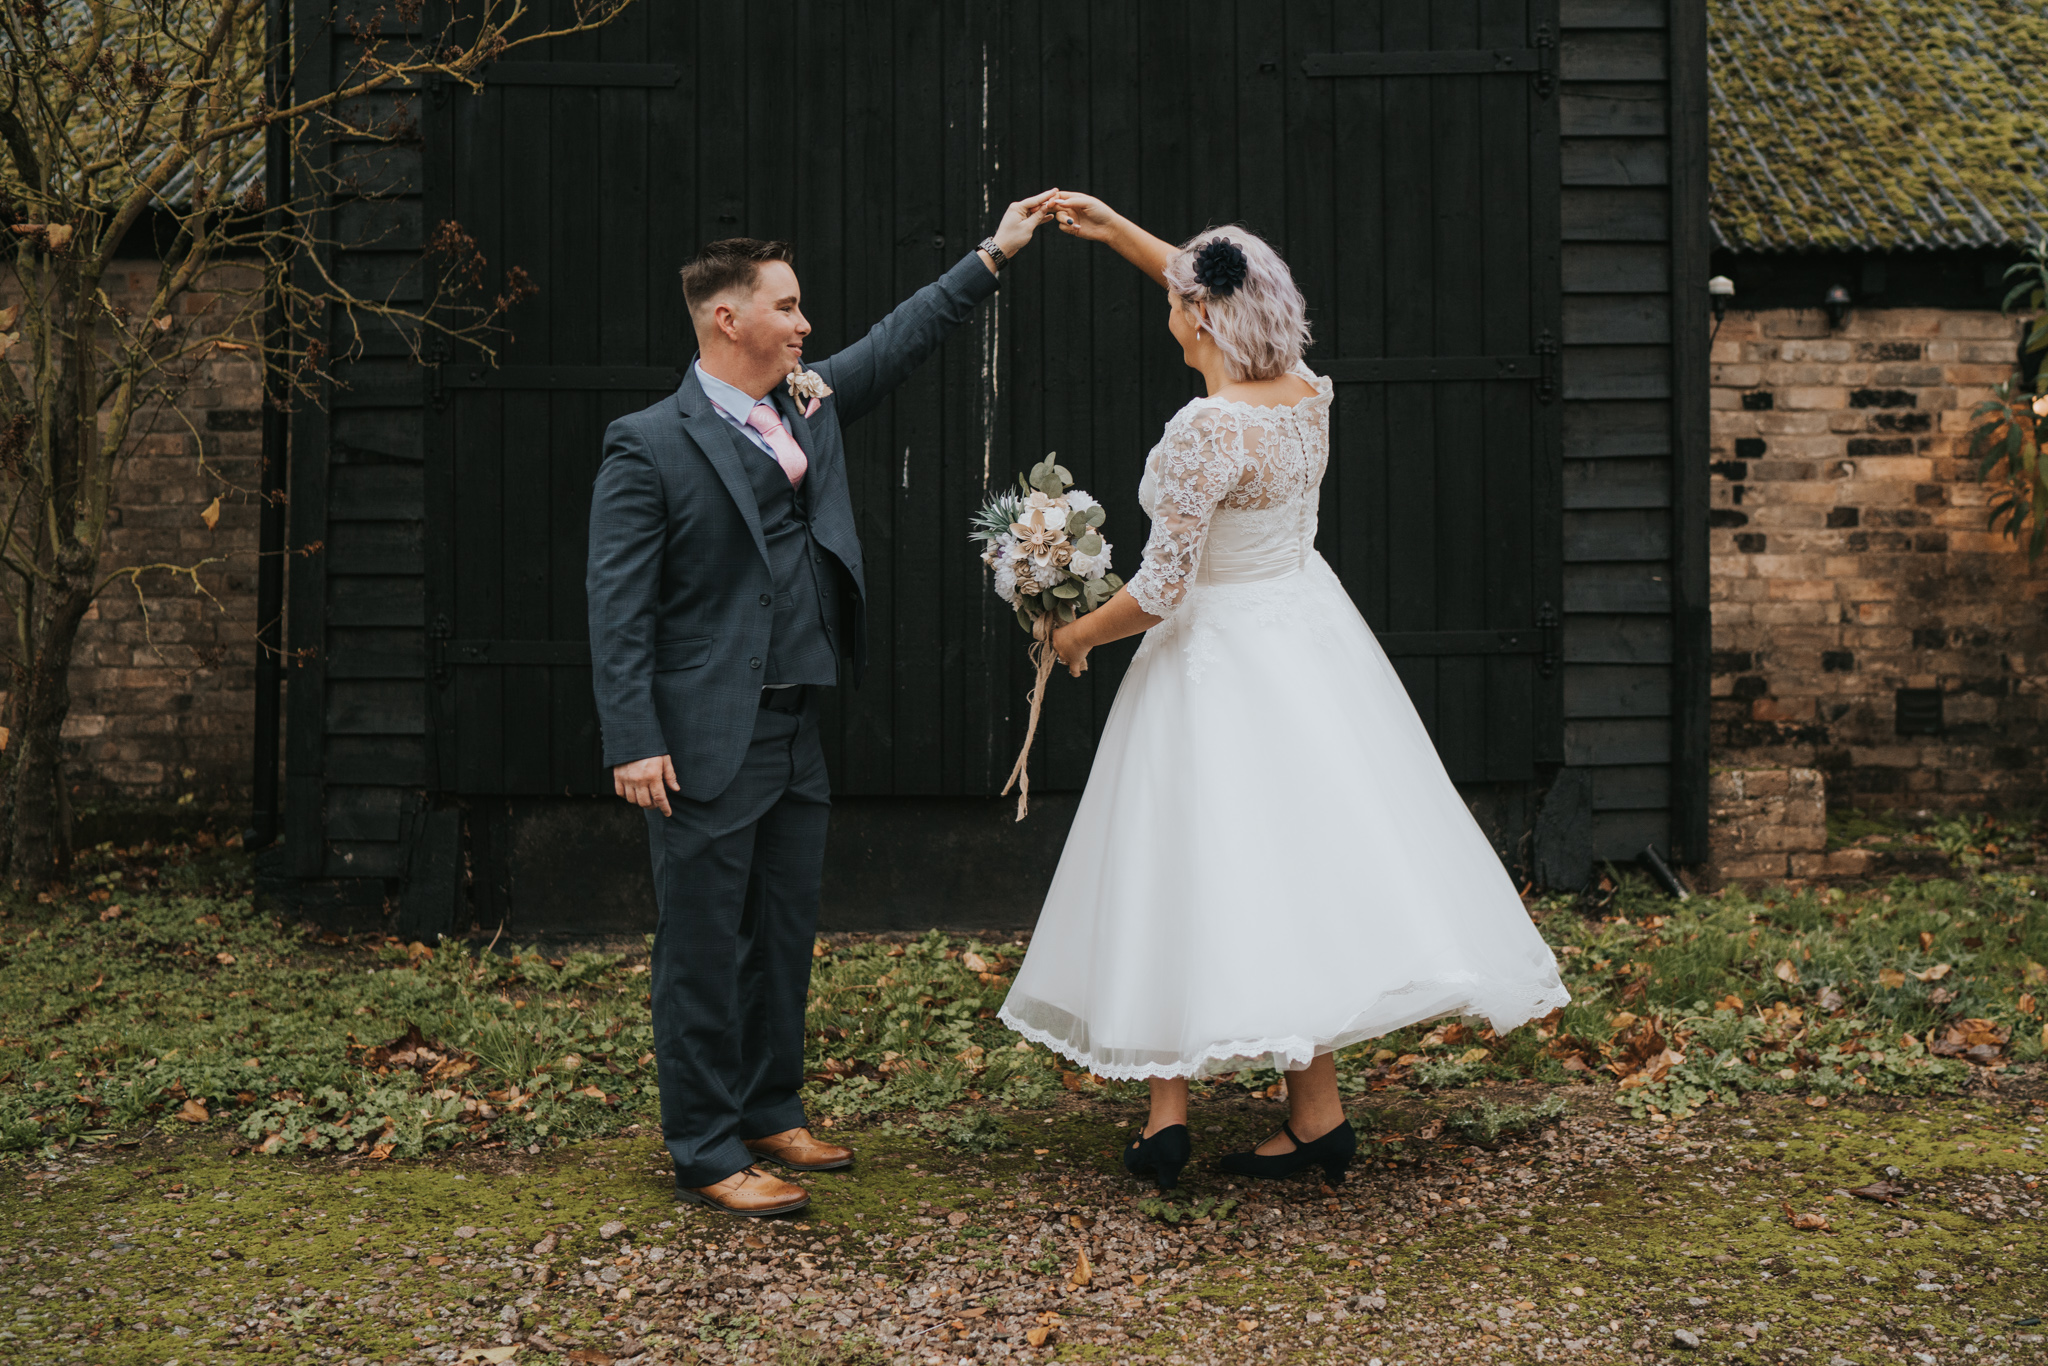 rhia-james-rustic-crabbs-barn-vintage-50s-retro-wedding-grace-elizabeth-colchester-essex-alternative-relaxed-wedding-family-photography-devon-suffolk-norfolk-essex (84 of 138).jpg